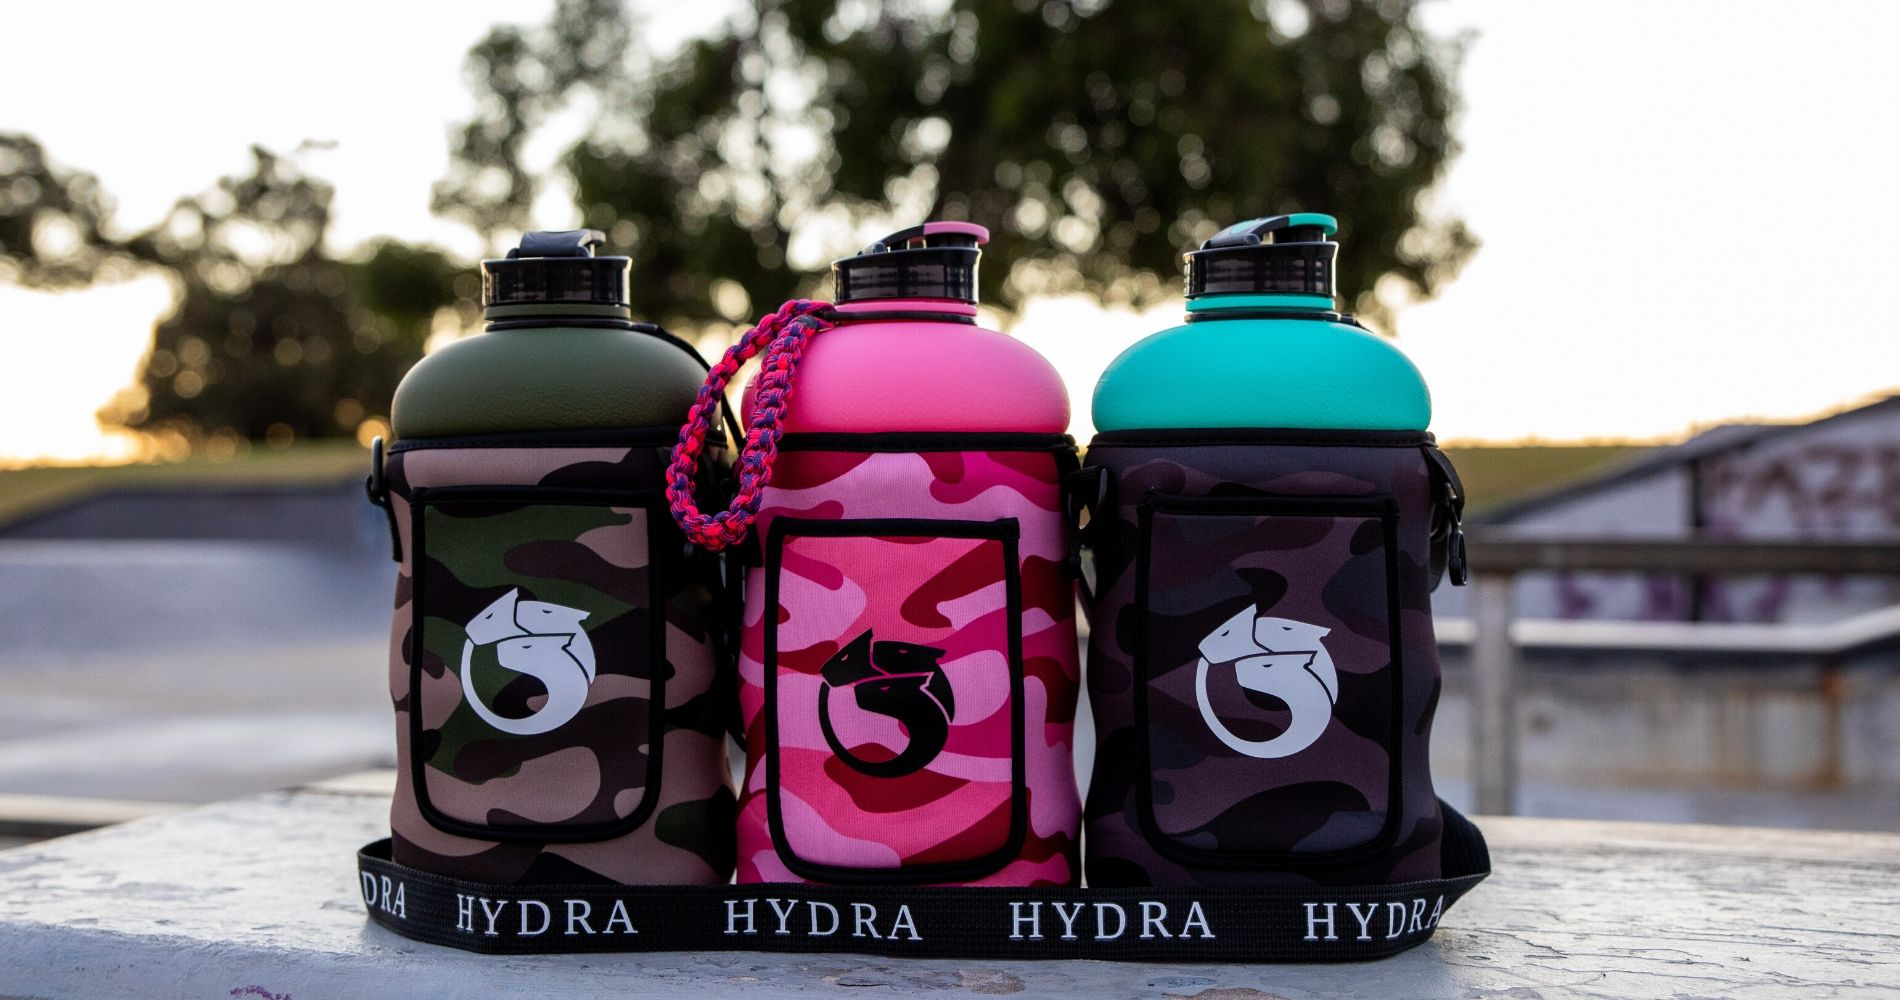 Hydra - Bottle & Sleeves